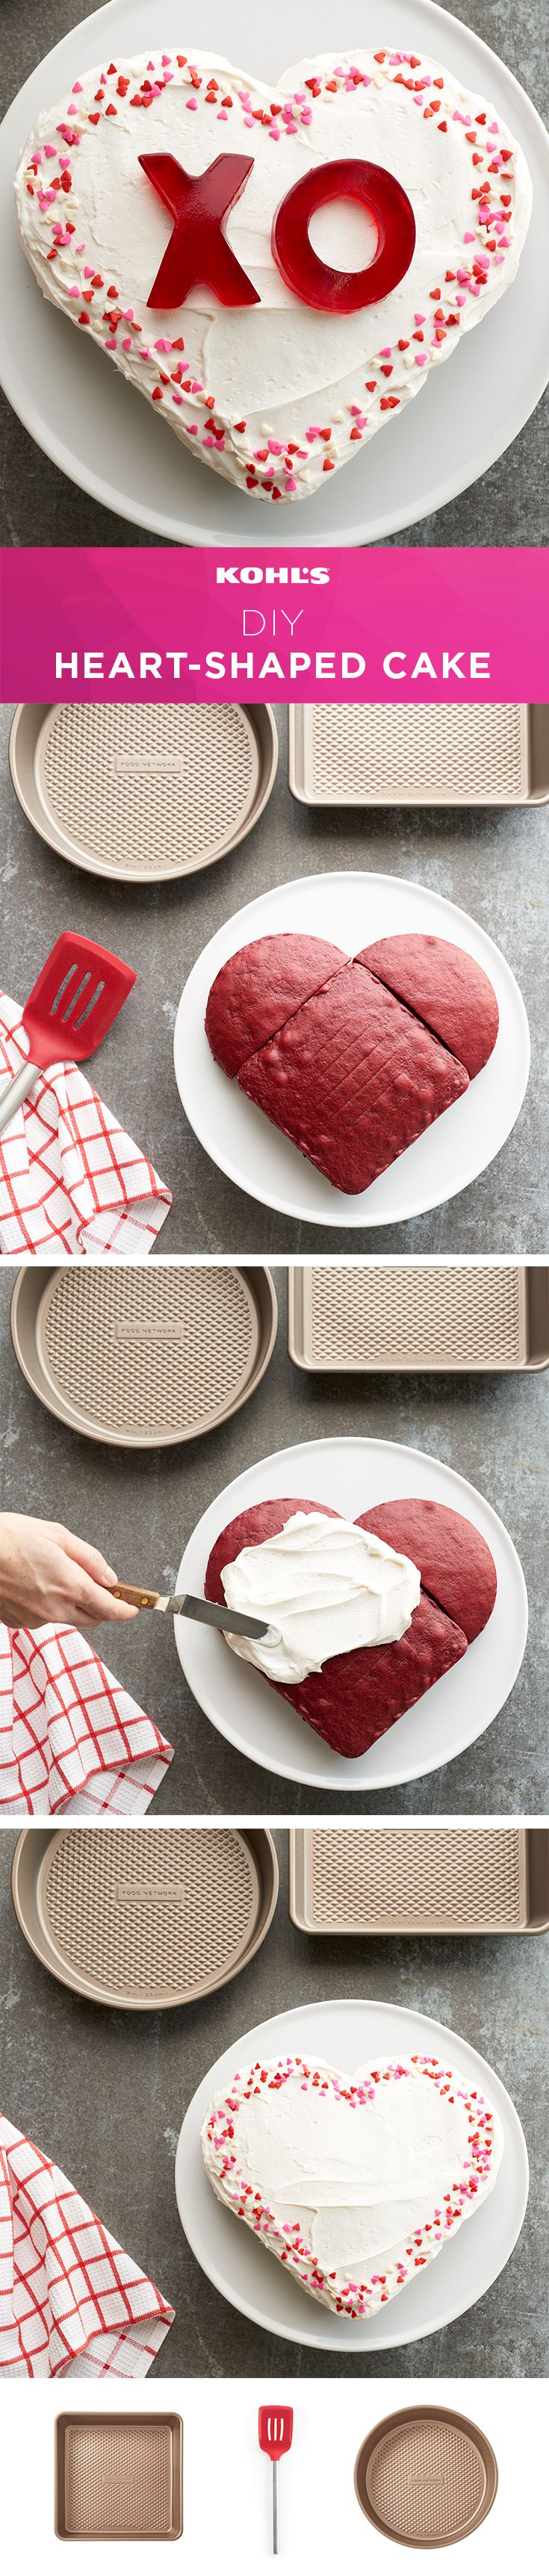 Sweet treats for your sweetheart is what Valentine's Day is all about. If you don't have a heart-shaped pan, don't worry. This hack is so great, we just had to share it! Make a heart-shaped cake by combining a square cake with a round cake that has been cut in half. Then decorate to your heart's content. Shop the cake pans at Kohl's. #valentinesday #bakinghack